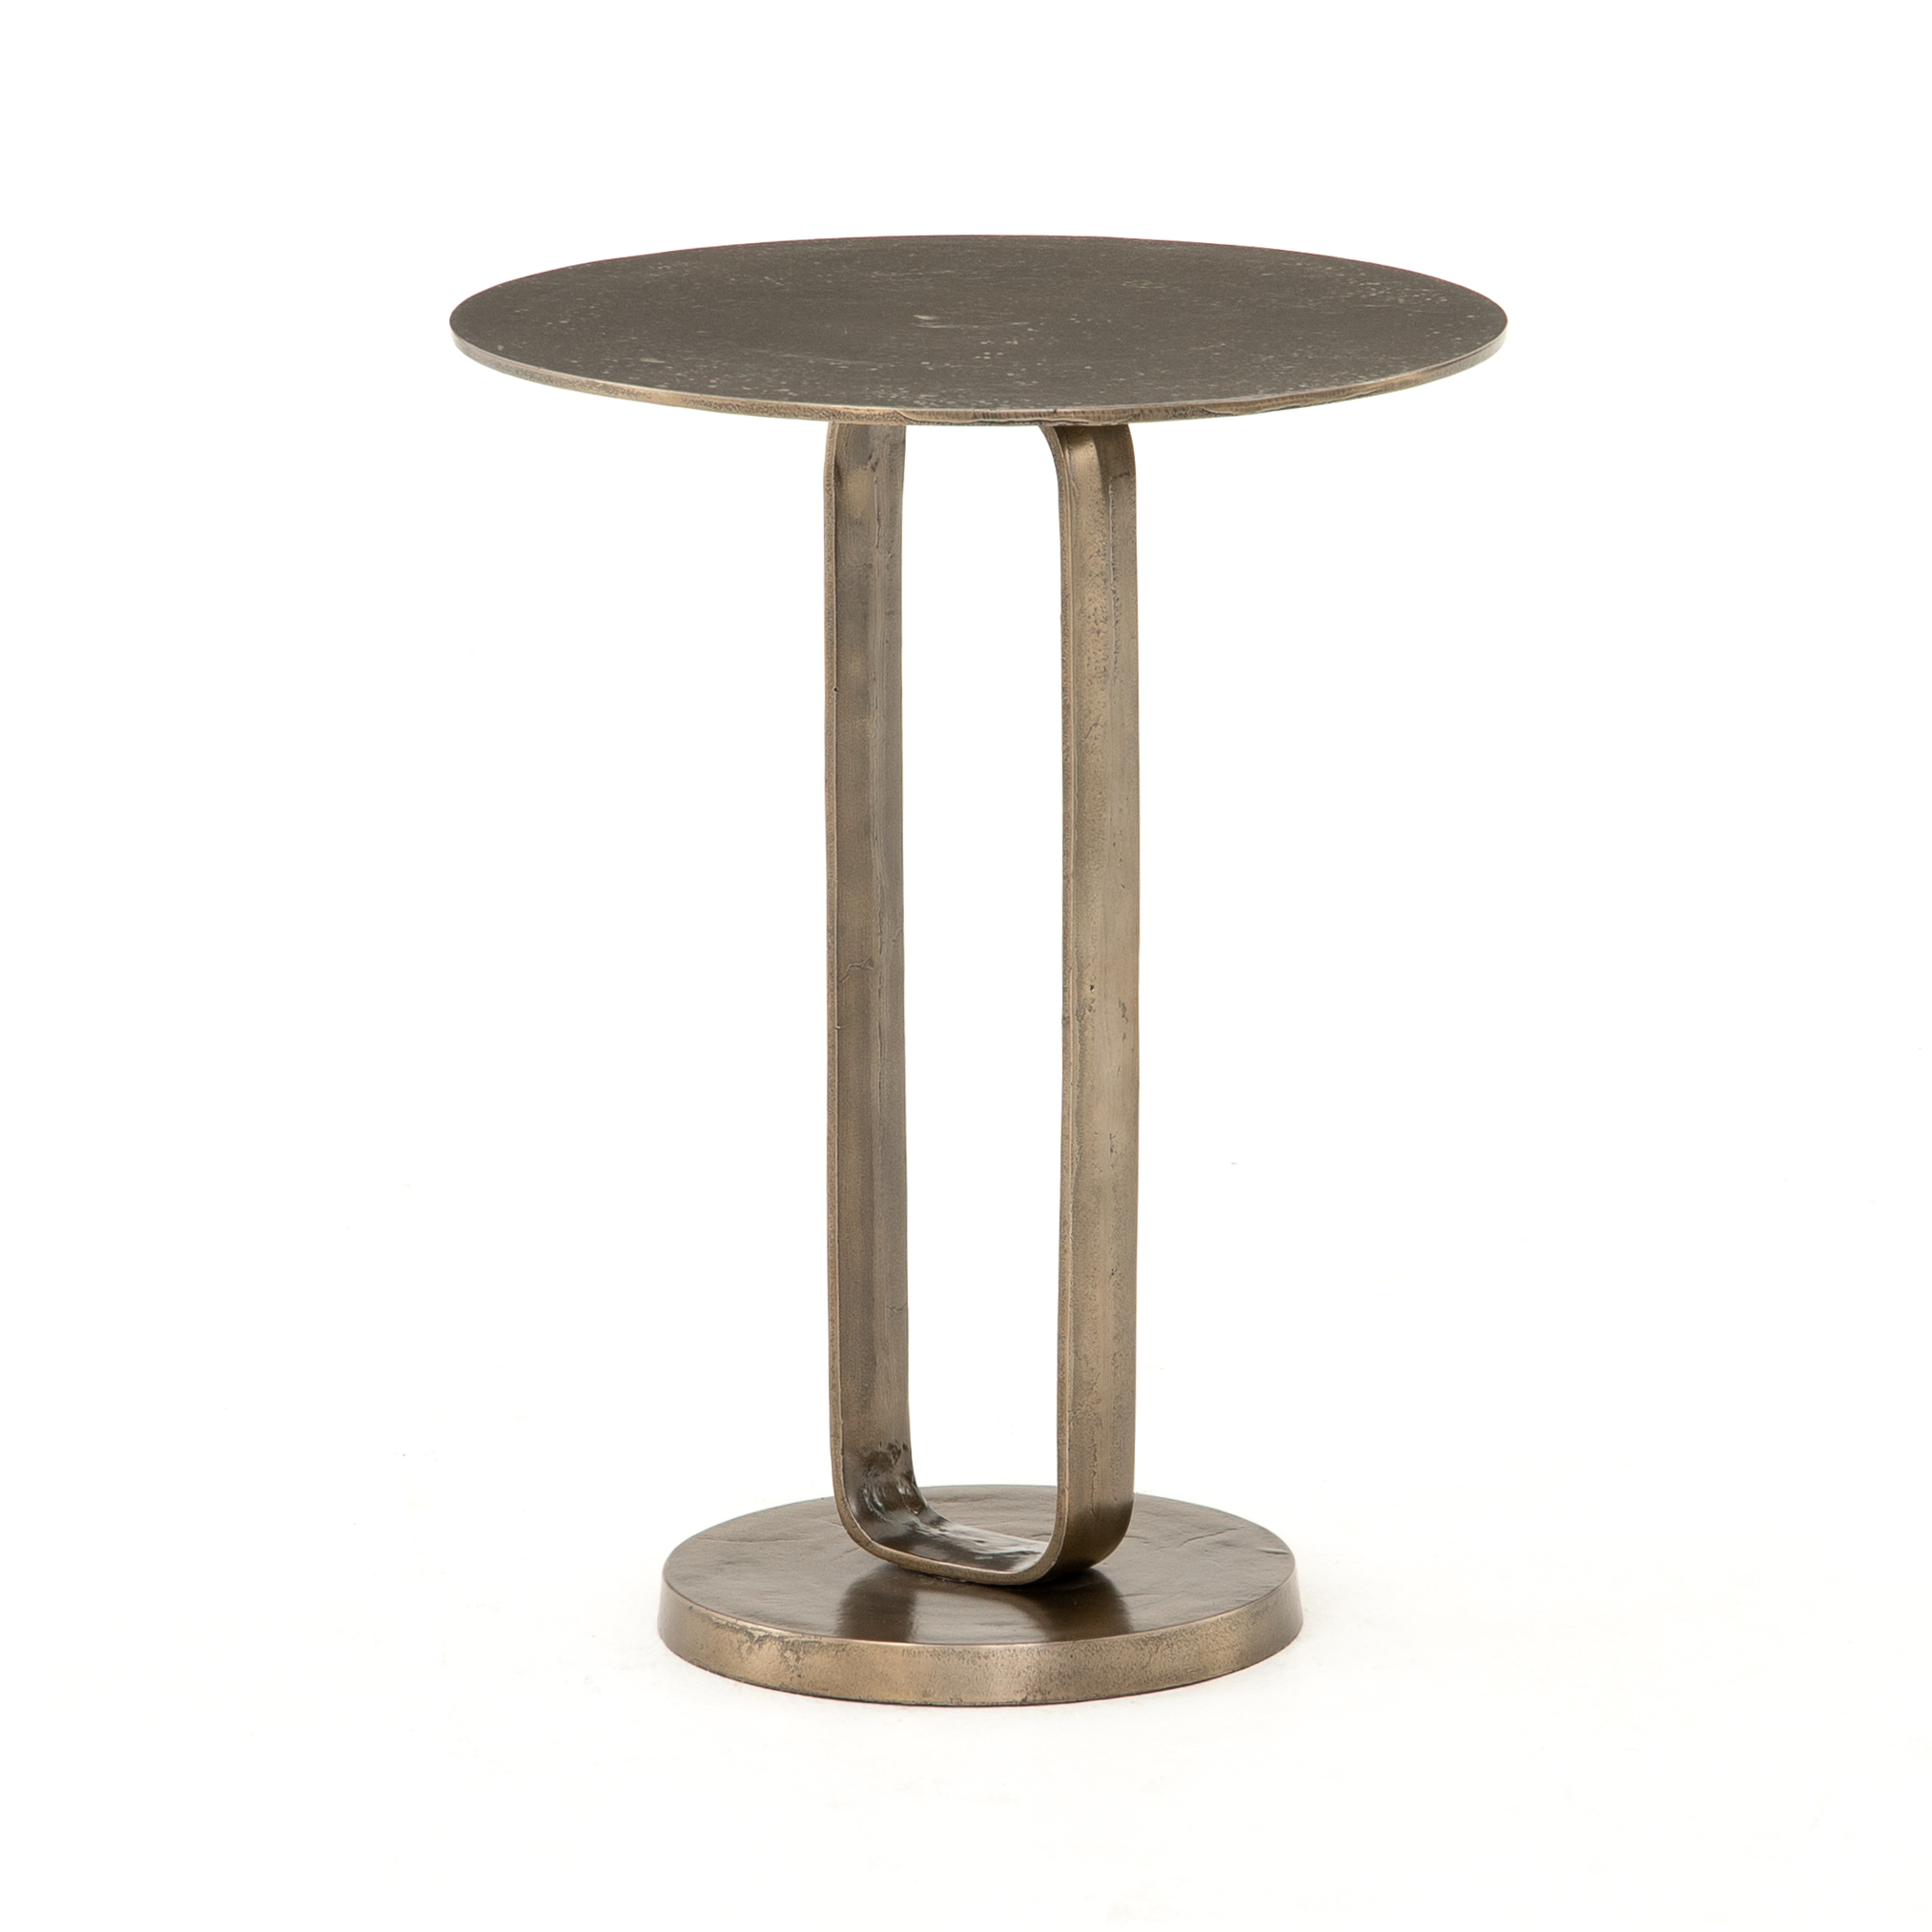 Douglas End Table    |  Precise curves with modern presence. Rounded base and tabletop of aged bronze-finished aluminum are connected via a shapely ring, for an open look and fun blend of scale and proportion. Safe for outdoor use, too!